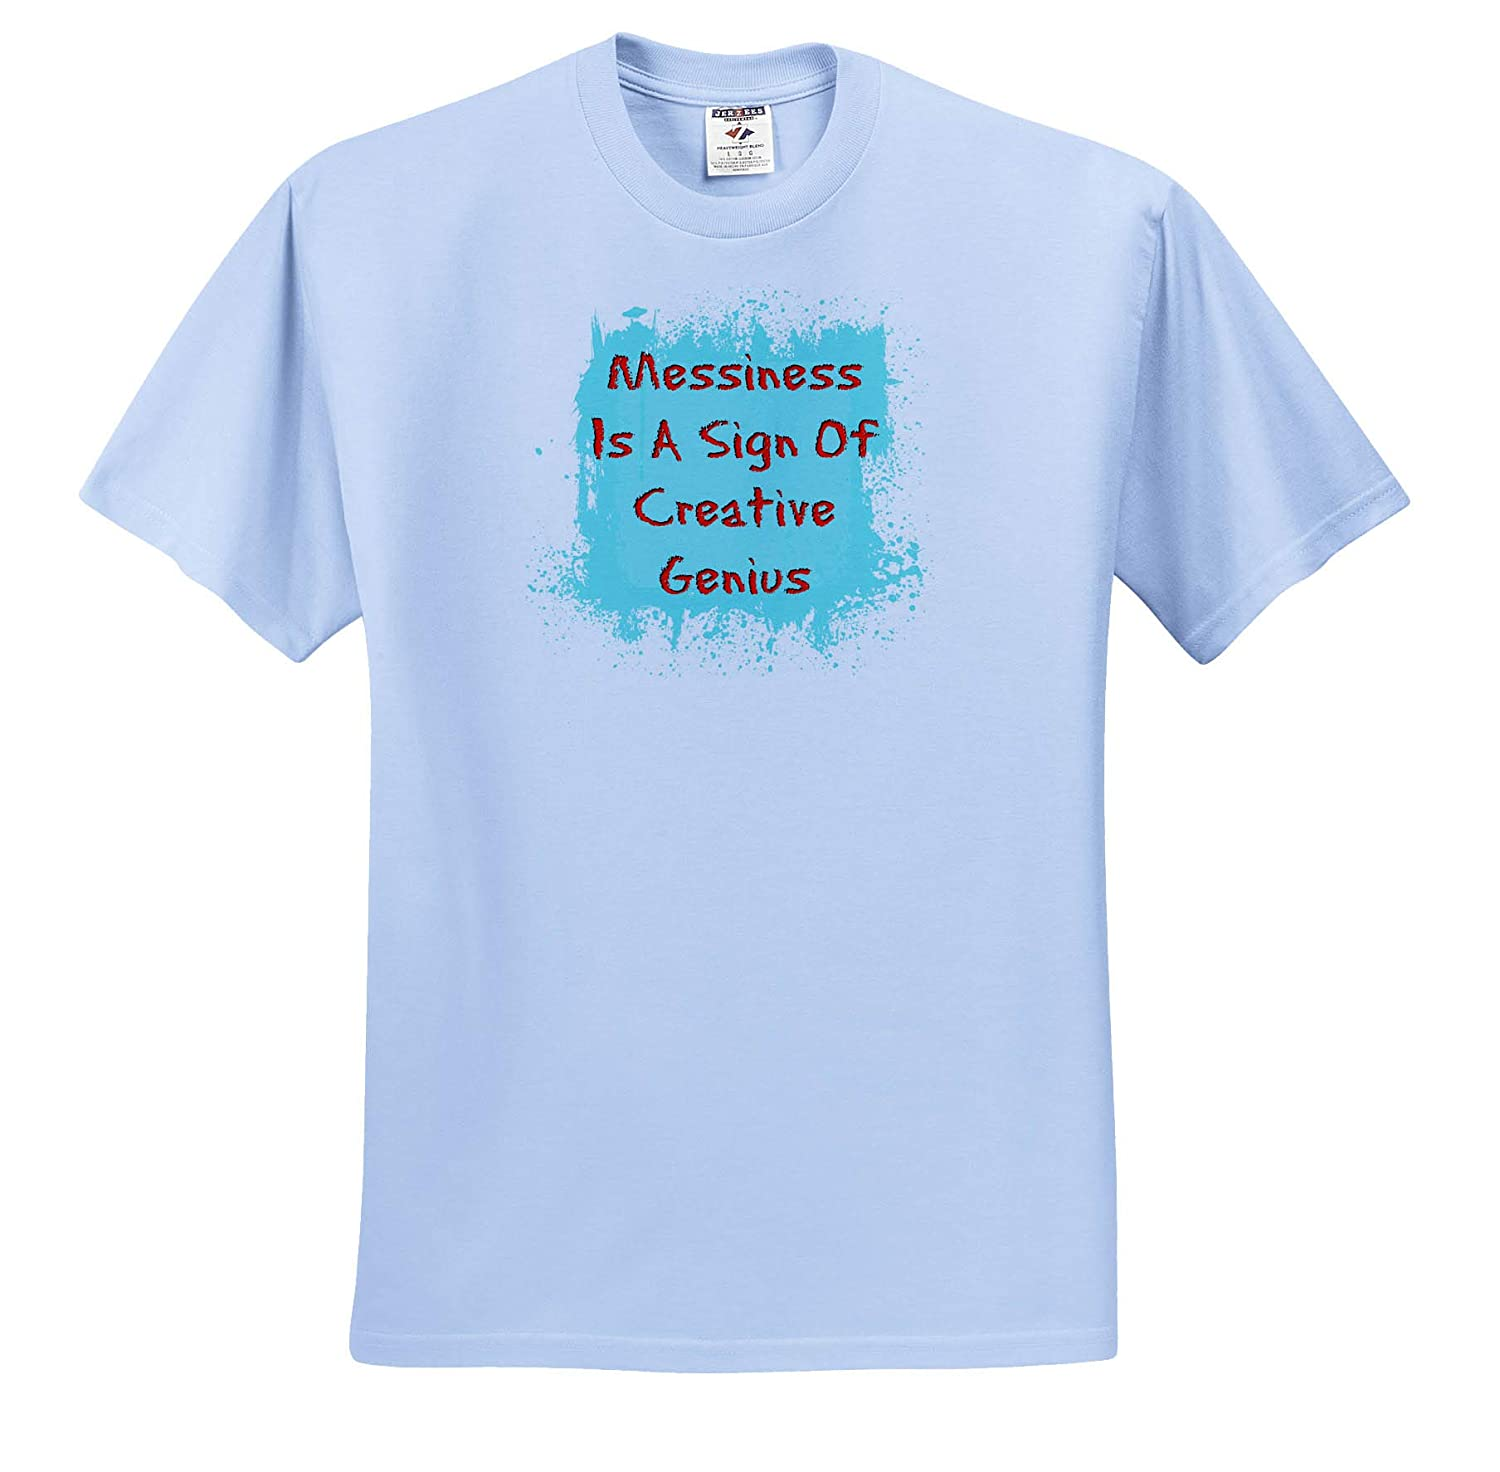 Adult T-Shirt XL 3dRose Carrie Merchant Image Quote Image of Messiness is A Sign of Creative Genius ts/_317446